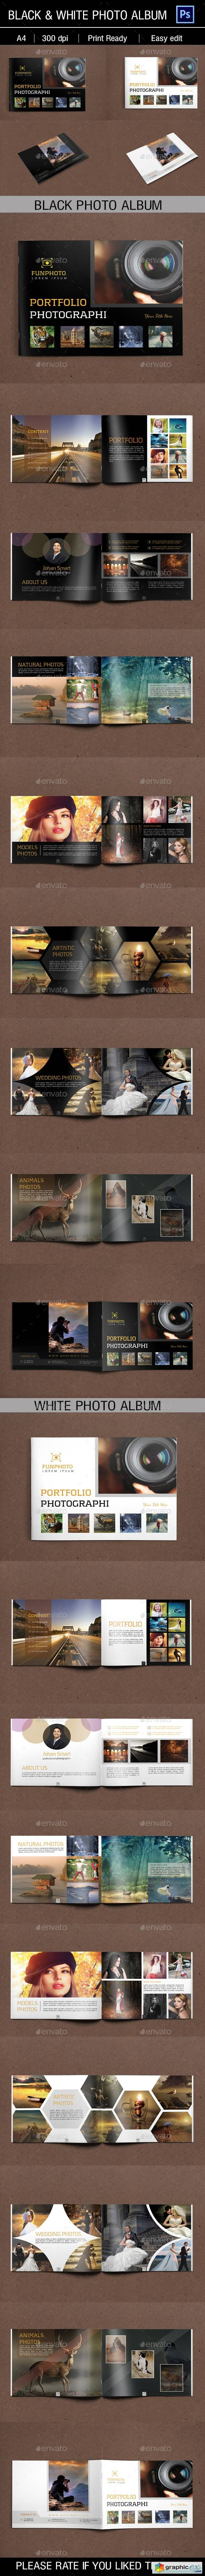 Portfolio Photographer vol 4